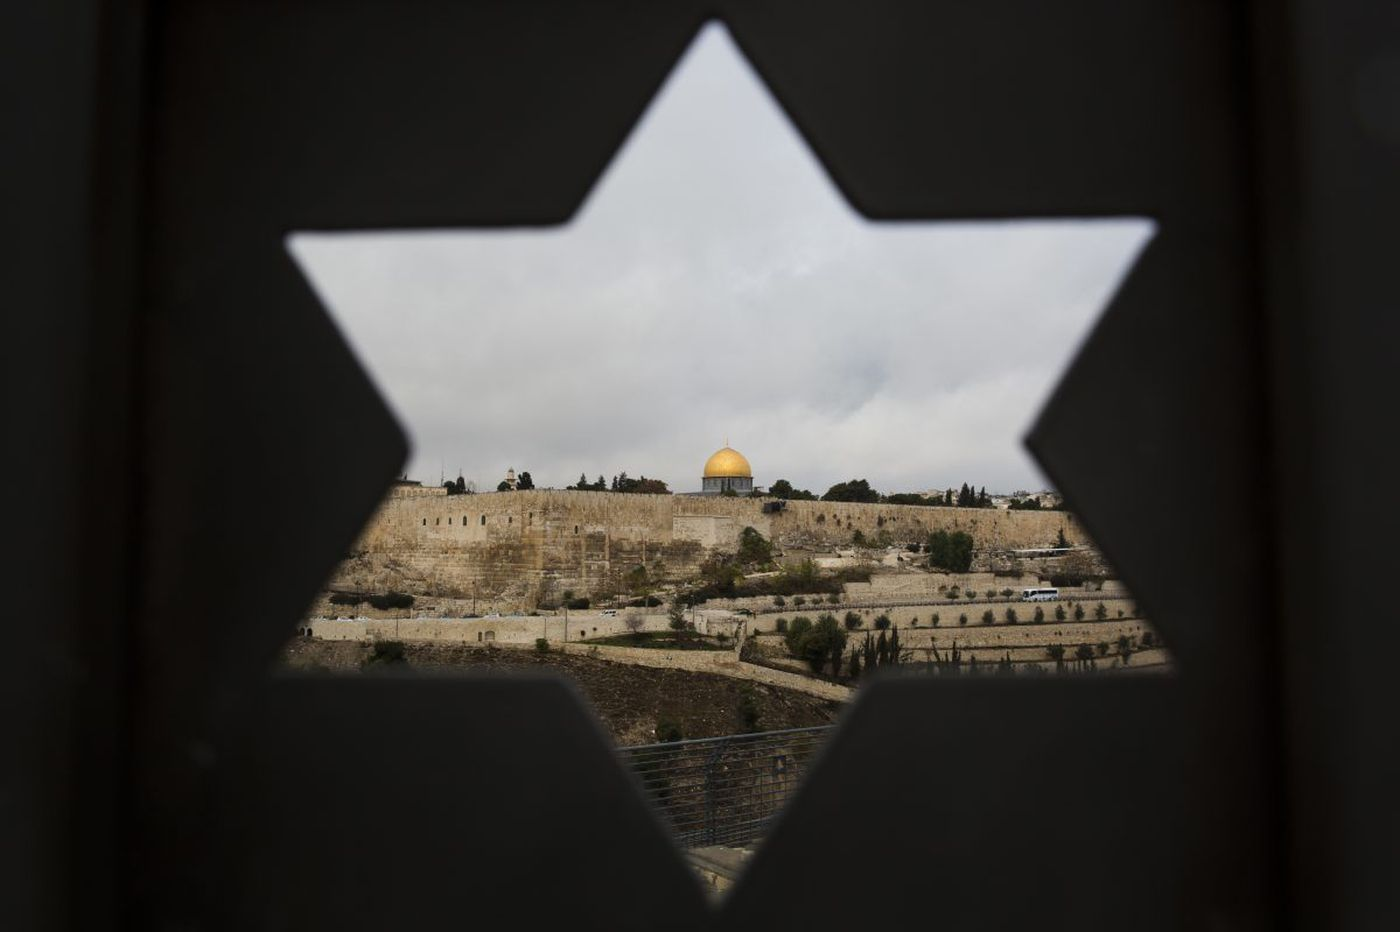 Quaker group among 20 banned from travel to Israel